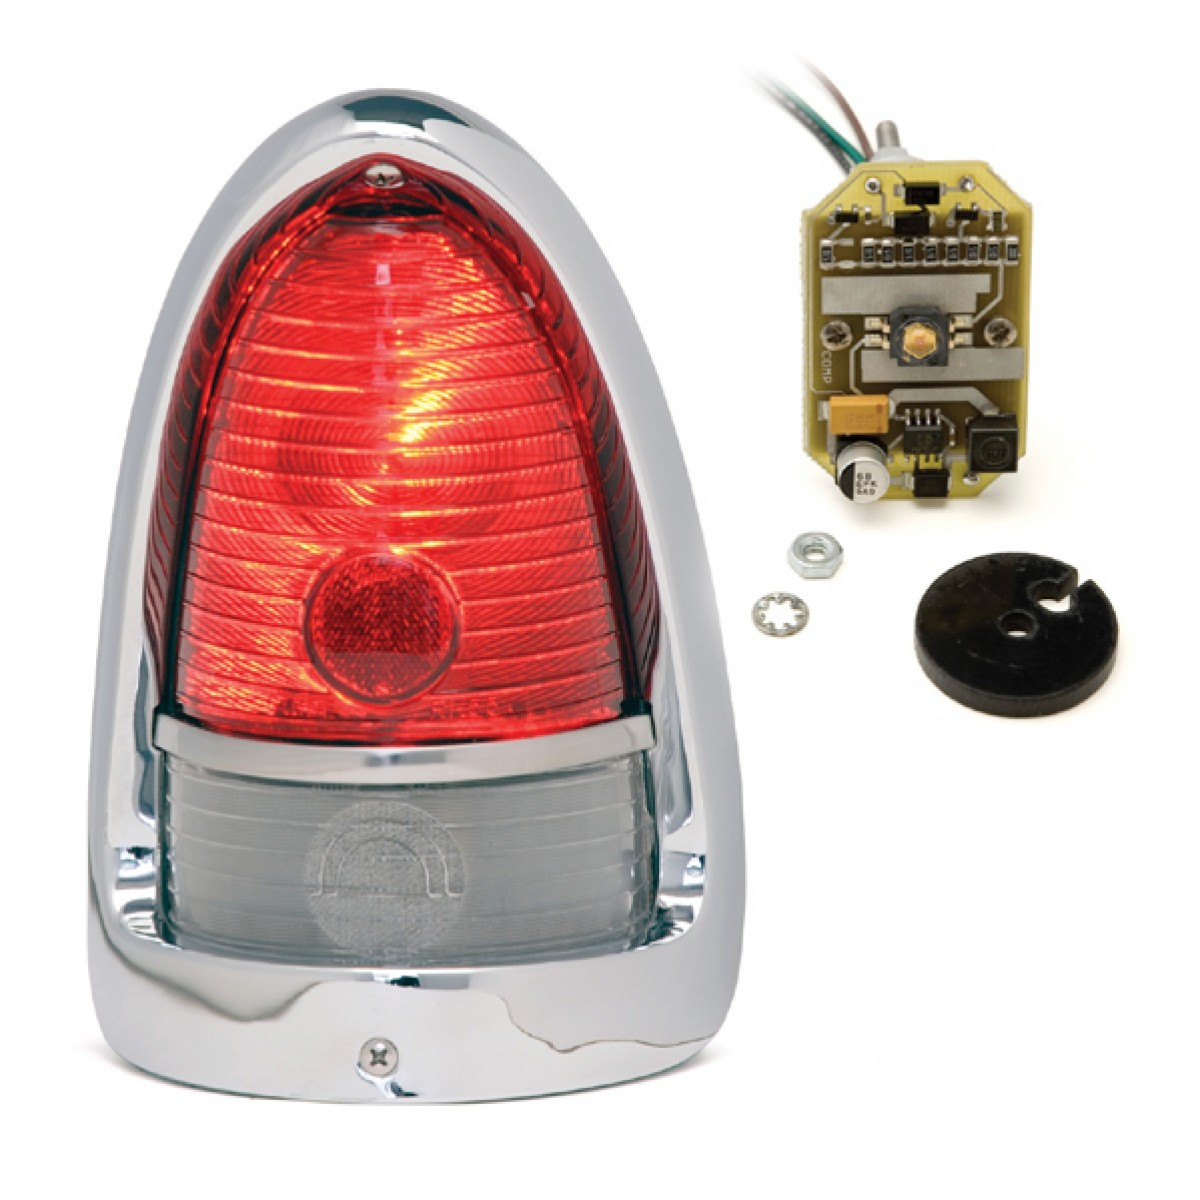 hight resolution of 55 chevy tail light wiring wiring diagram new55 chevy tail light wiring harness wiring diagram for